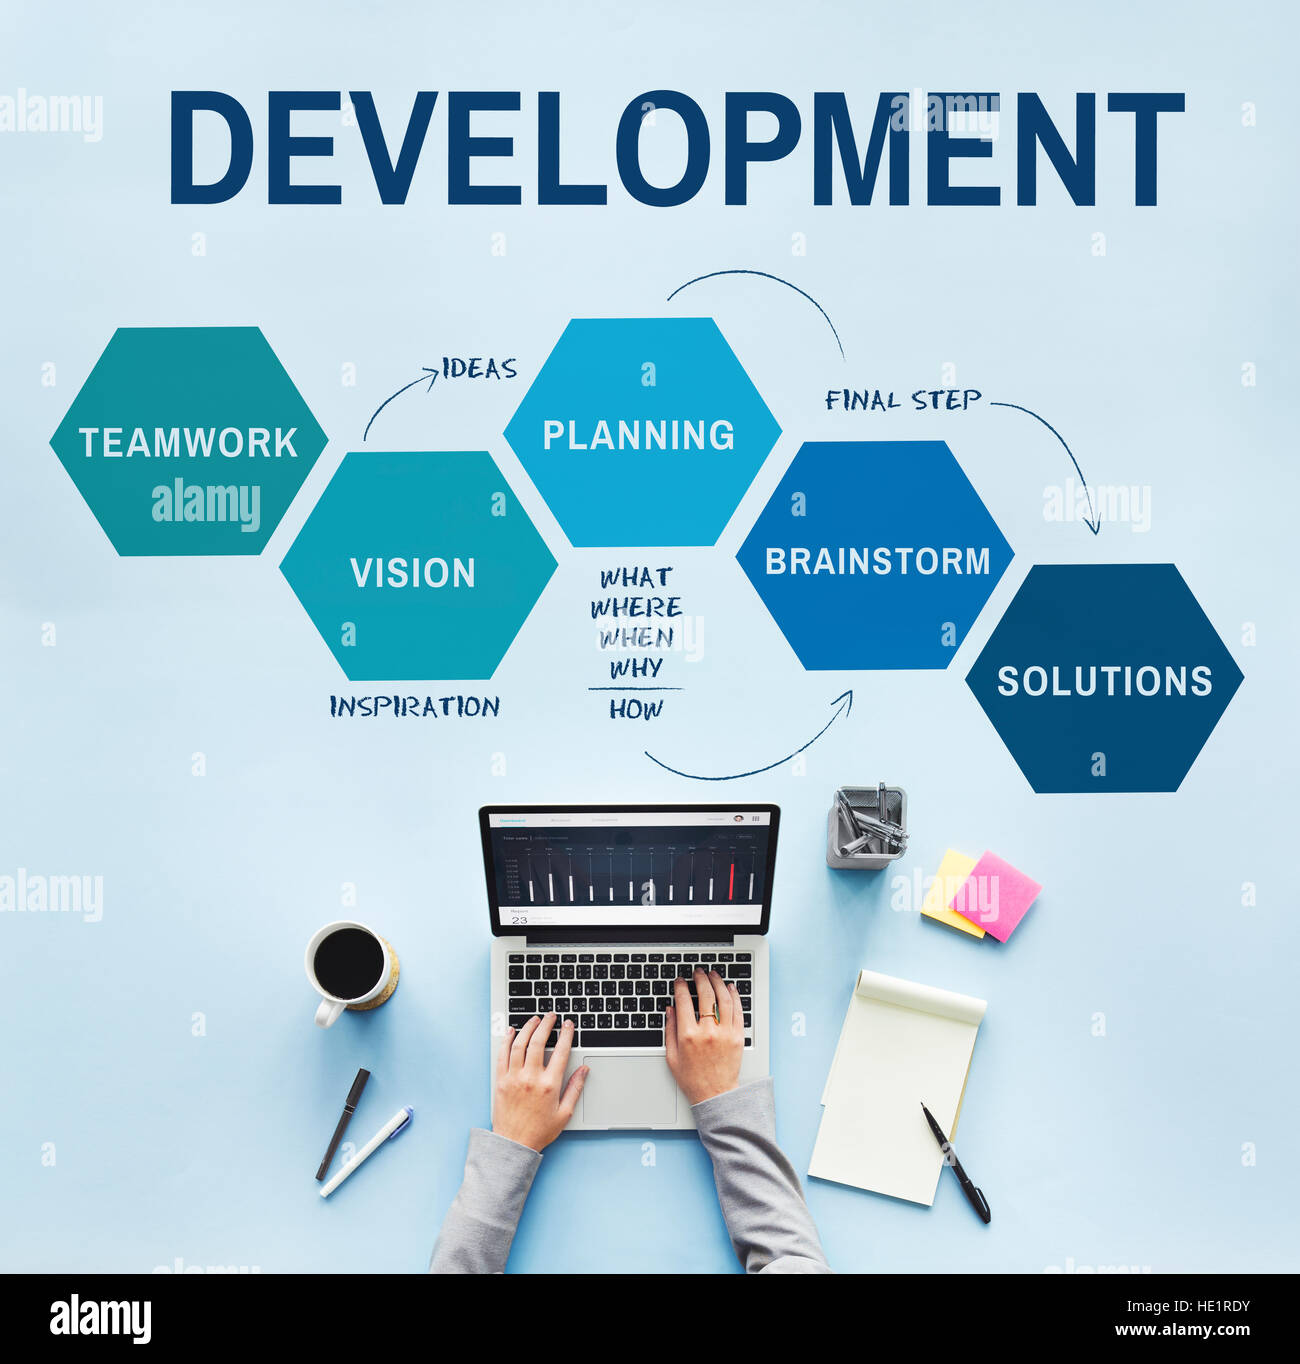 Stages of Business Development